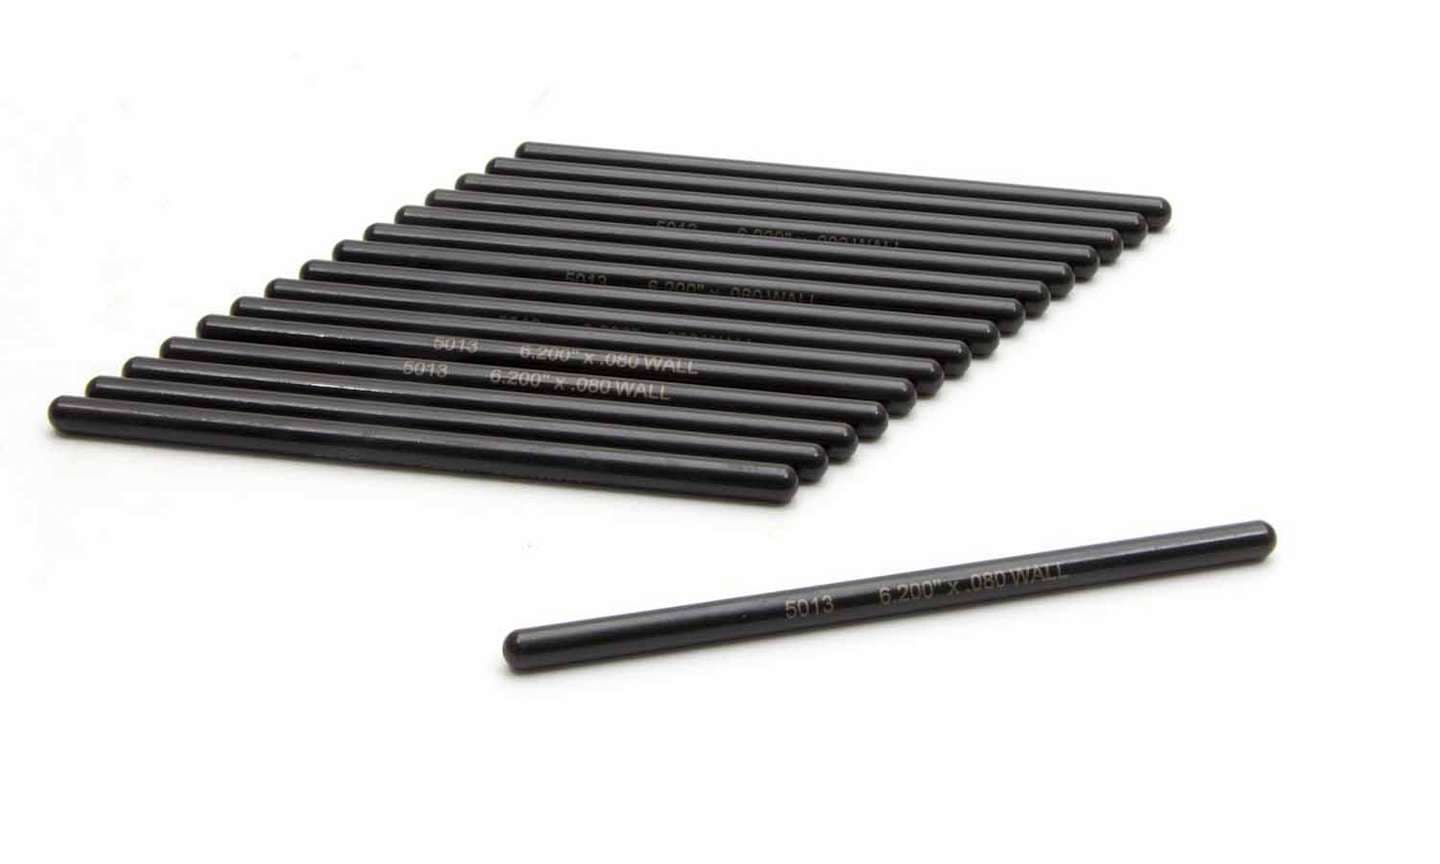 MANLEY 602 GM Crate Engine Replacement Push Rods -SET of 16